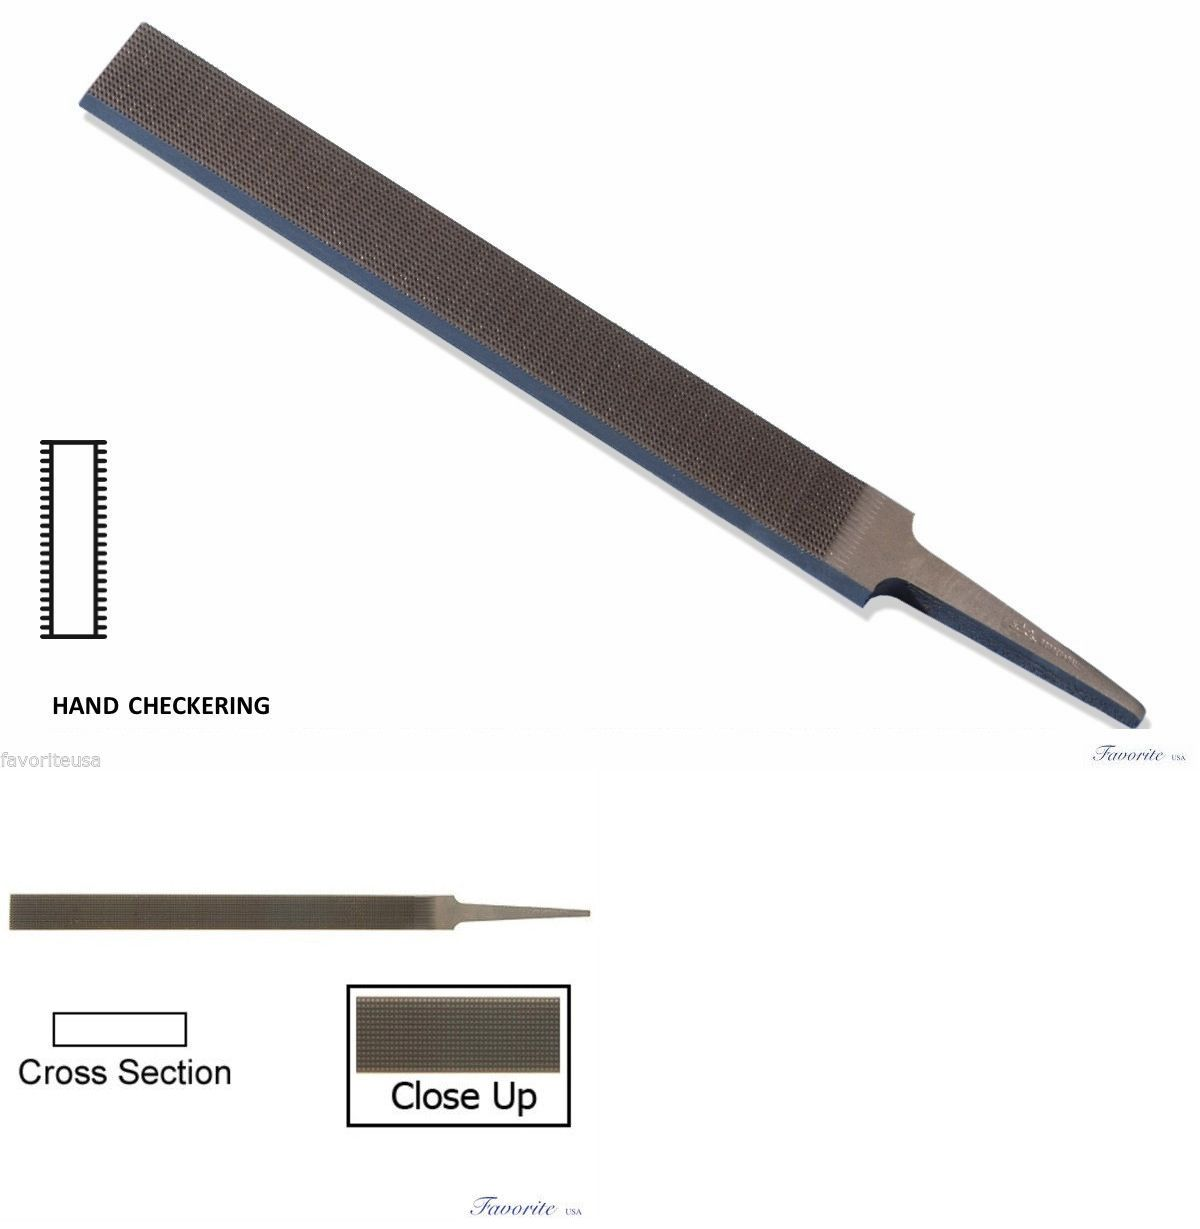 Files and Rifflers 179255: Grobet Swiss-Vallorbe Hand Checkering File - 8 Long-Cuts # 00-0-1-2 BUY IT NOW ONLY: $45.5